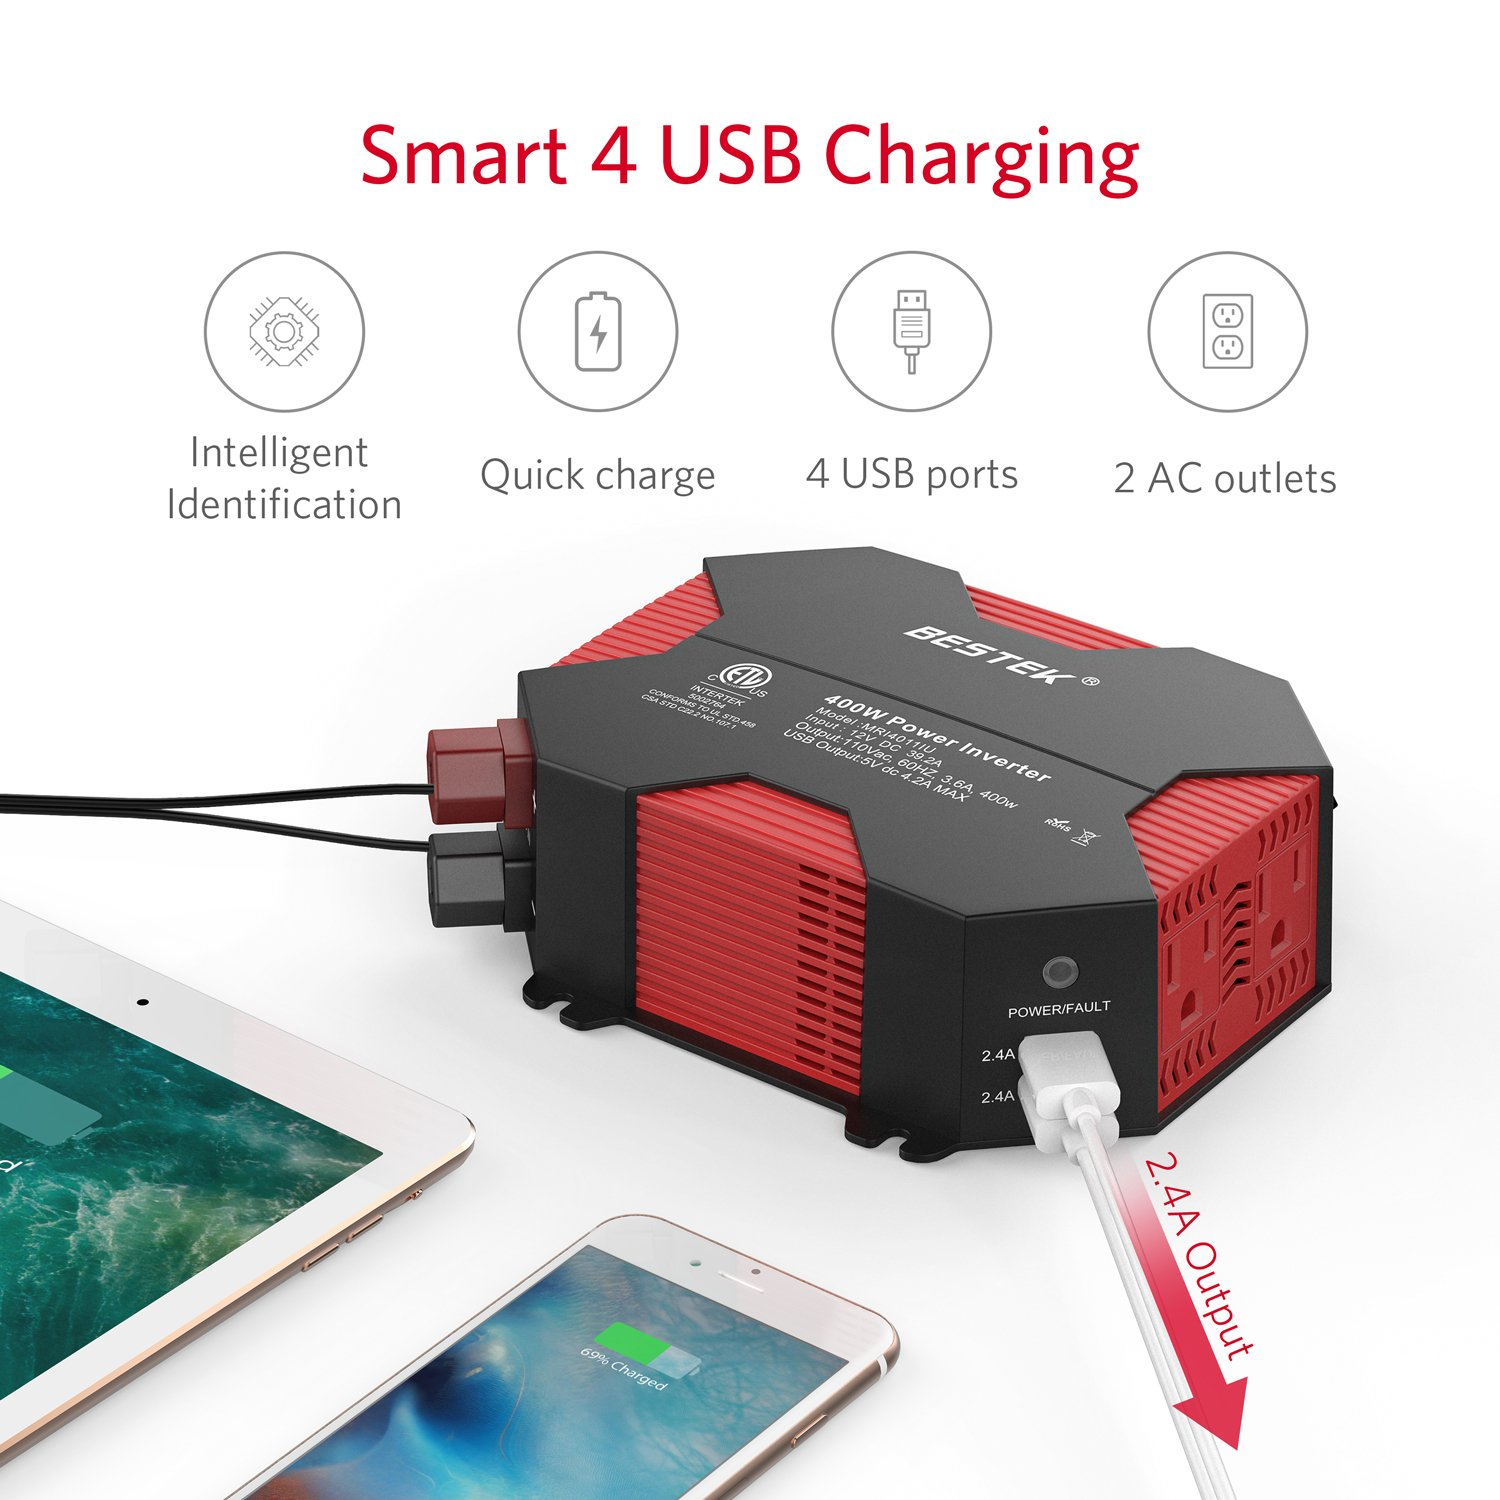 Car Power Inverter by BESTEK 400W Modified Sine Wave Inverter 4 USB Charging Ports DC 12V to AC 110V, MRI4011IU - image 4 of 8